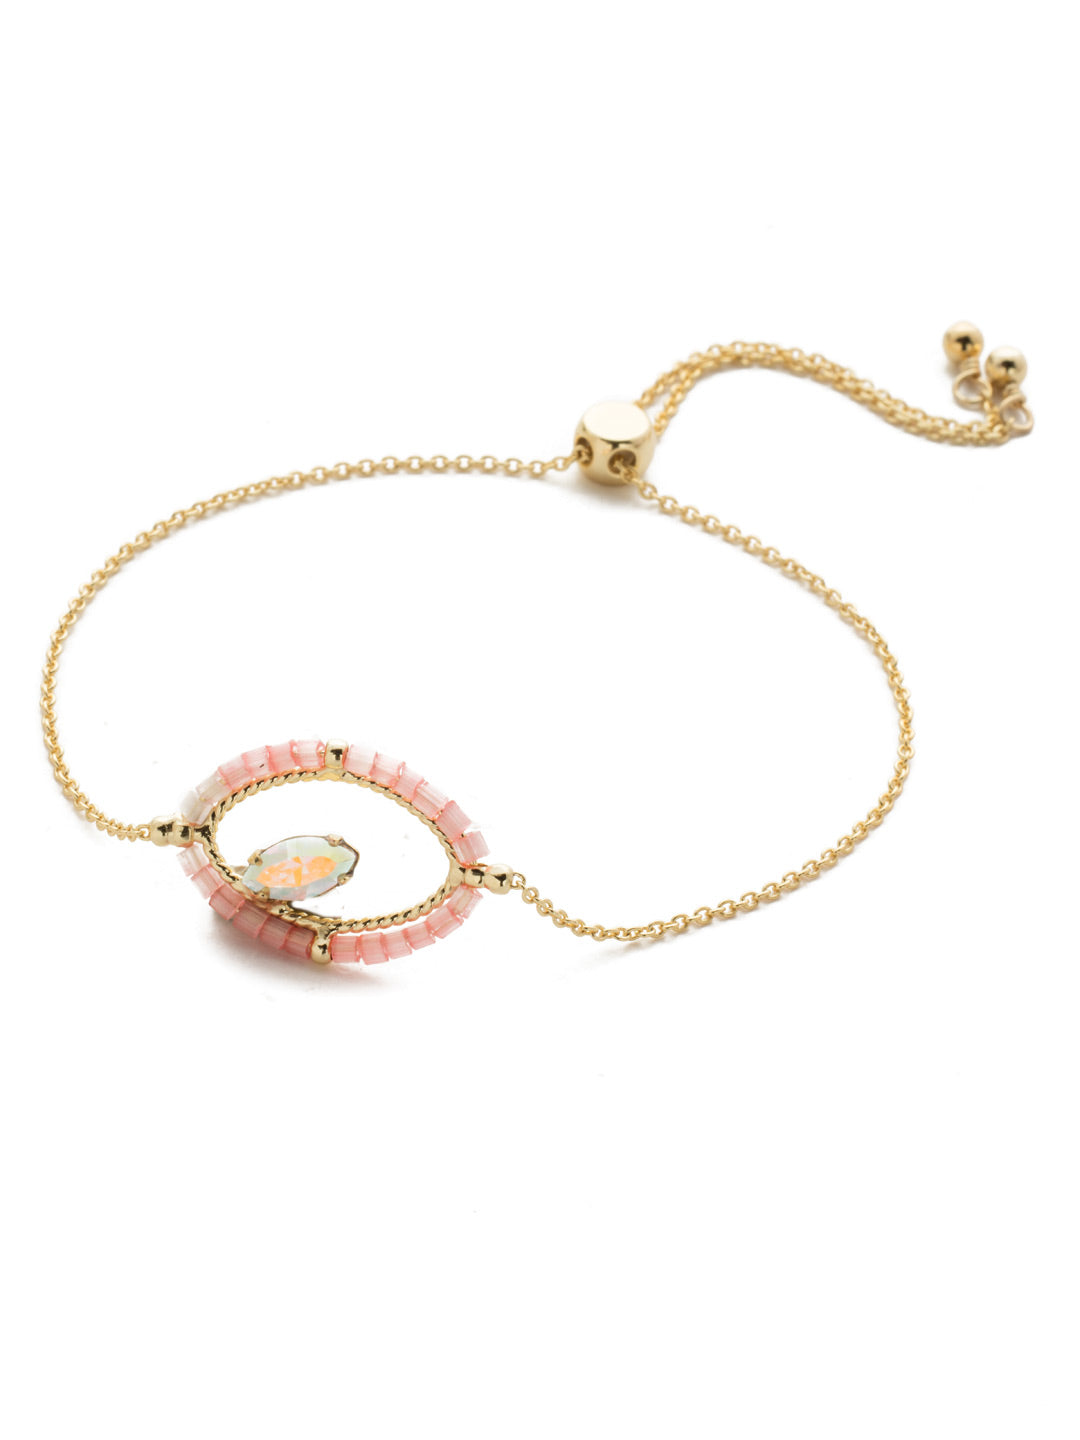 Eye of the Beholder Slider Bracelet - BEK34BGISS